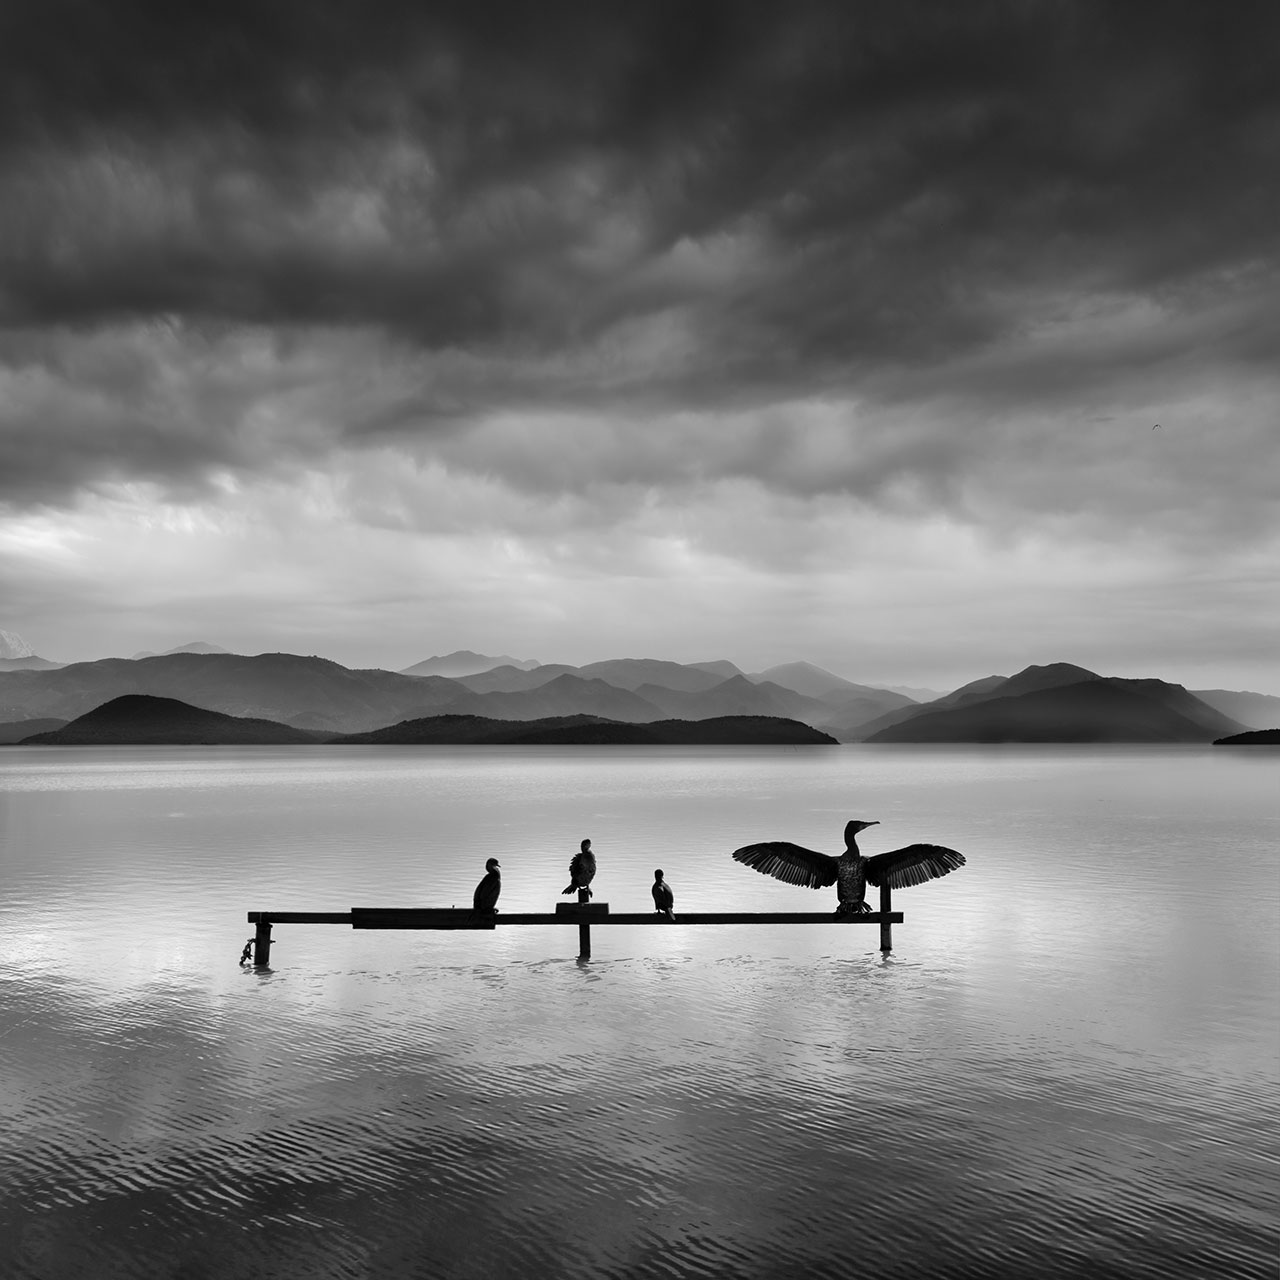 George Digalakis, To the distant mountains. © George Digalakis.